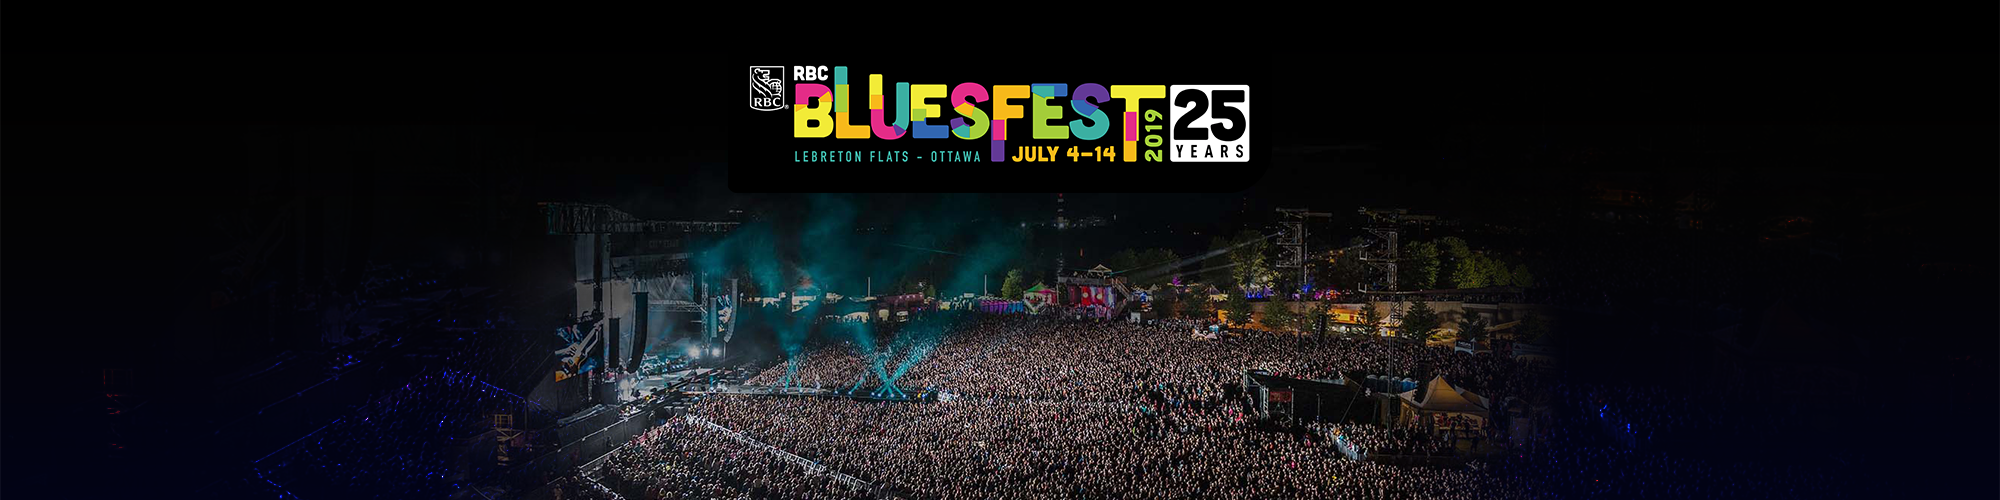 RBC Bluesfest All Day Giveaway